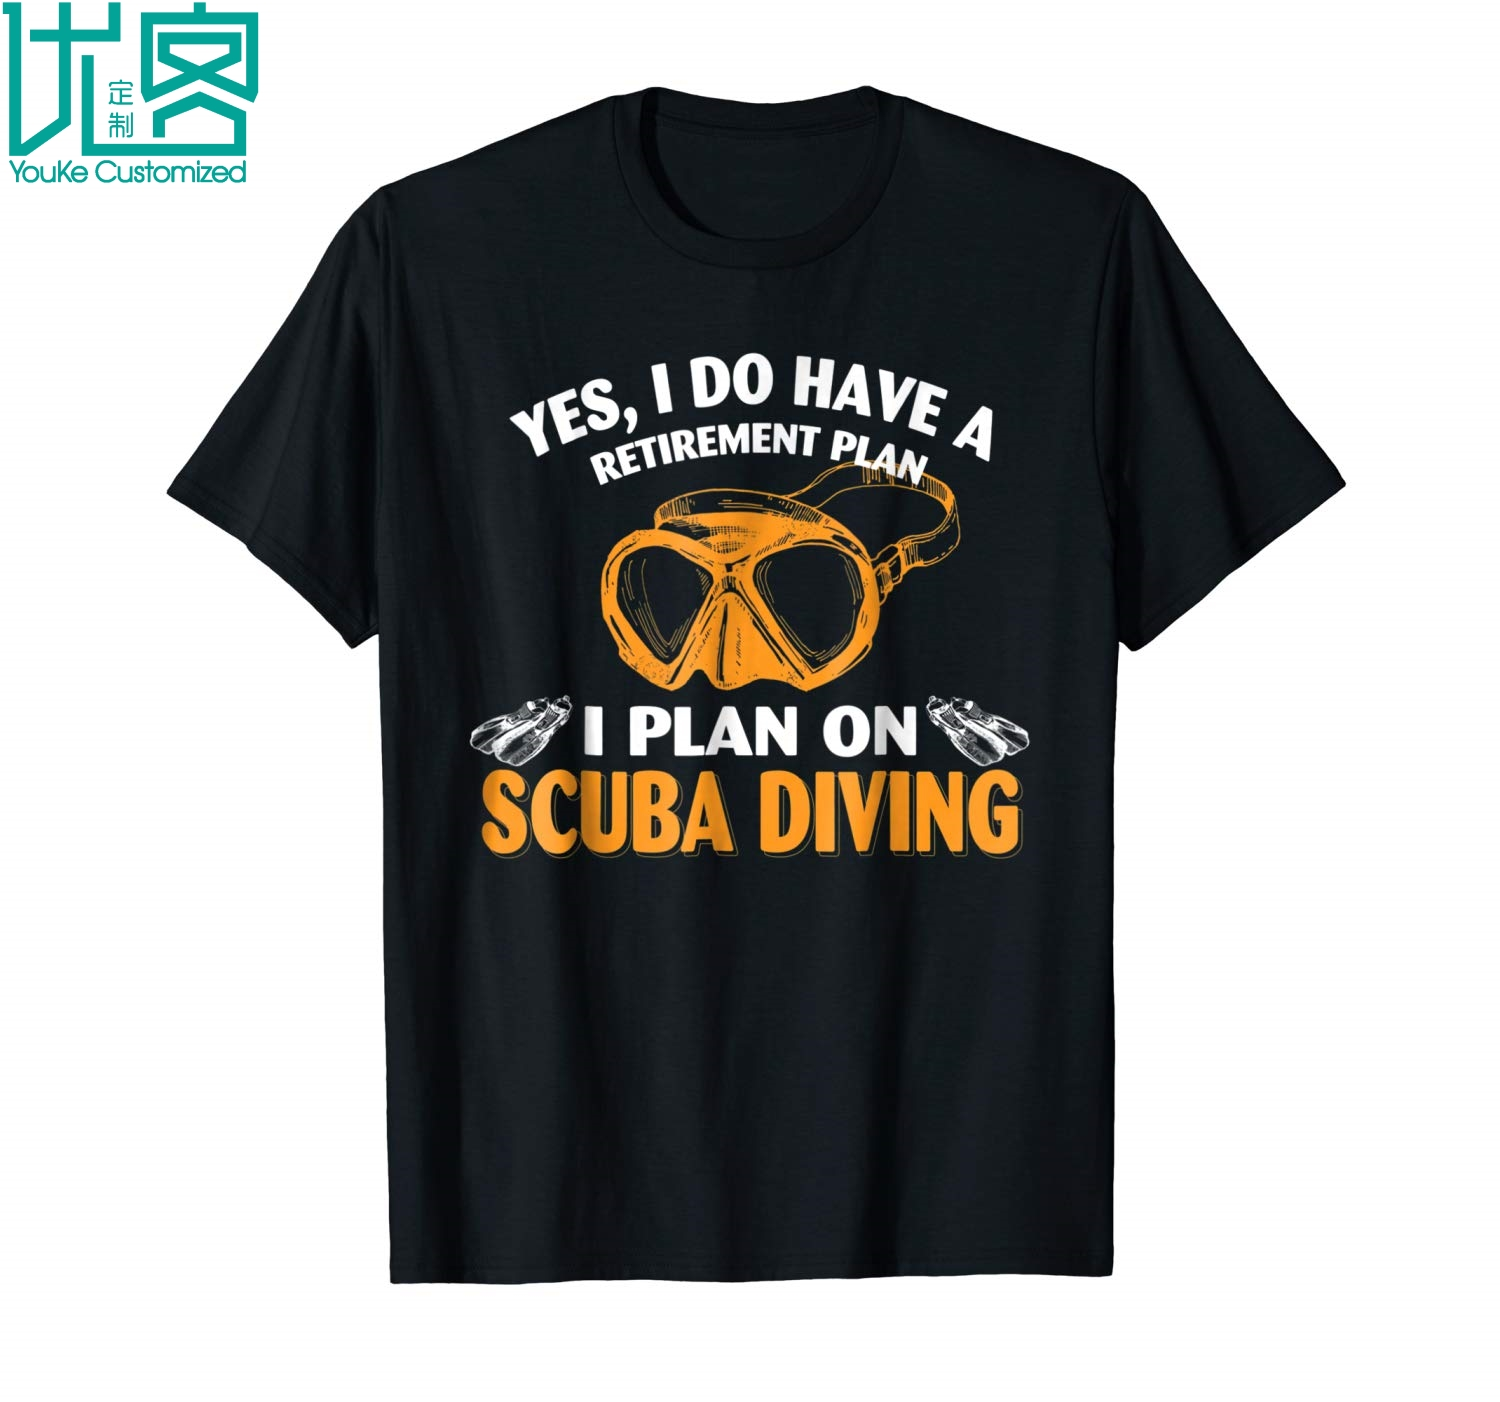 My Retirement Plan Is Scuba Diving T Shirt Gift 2019 Summer Men's Short Sleeve T-Shirt image